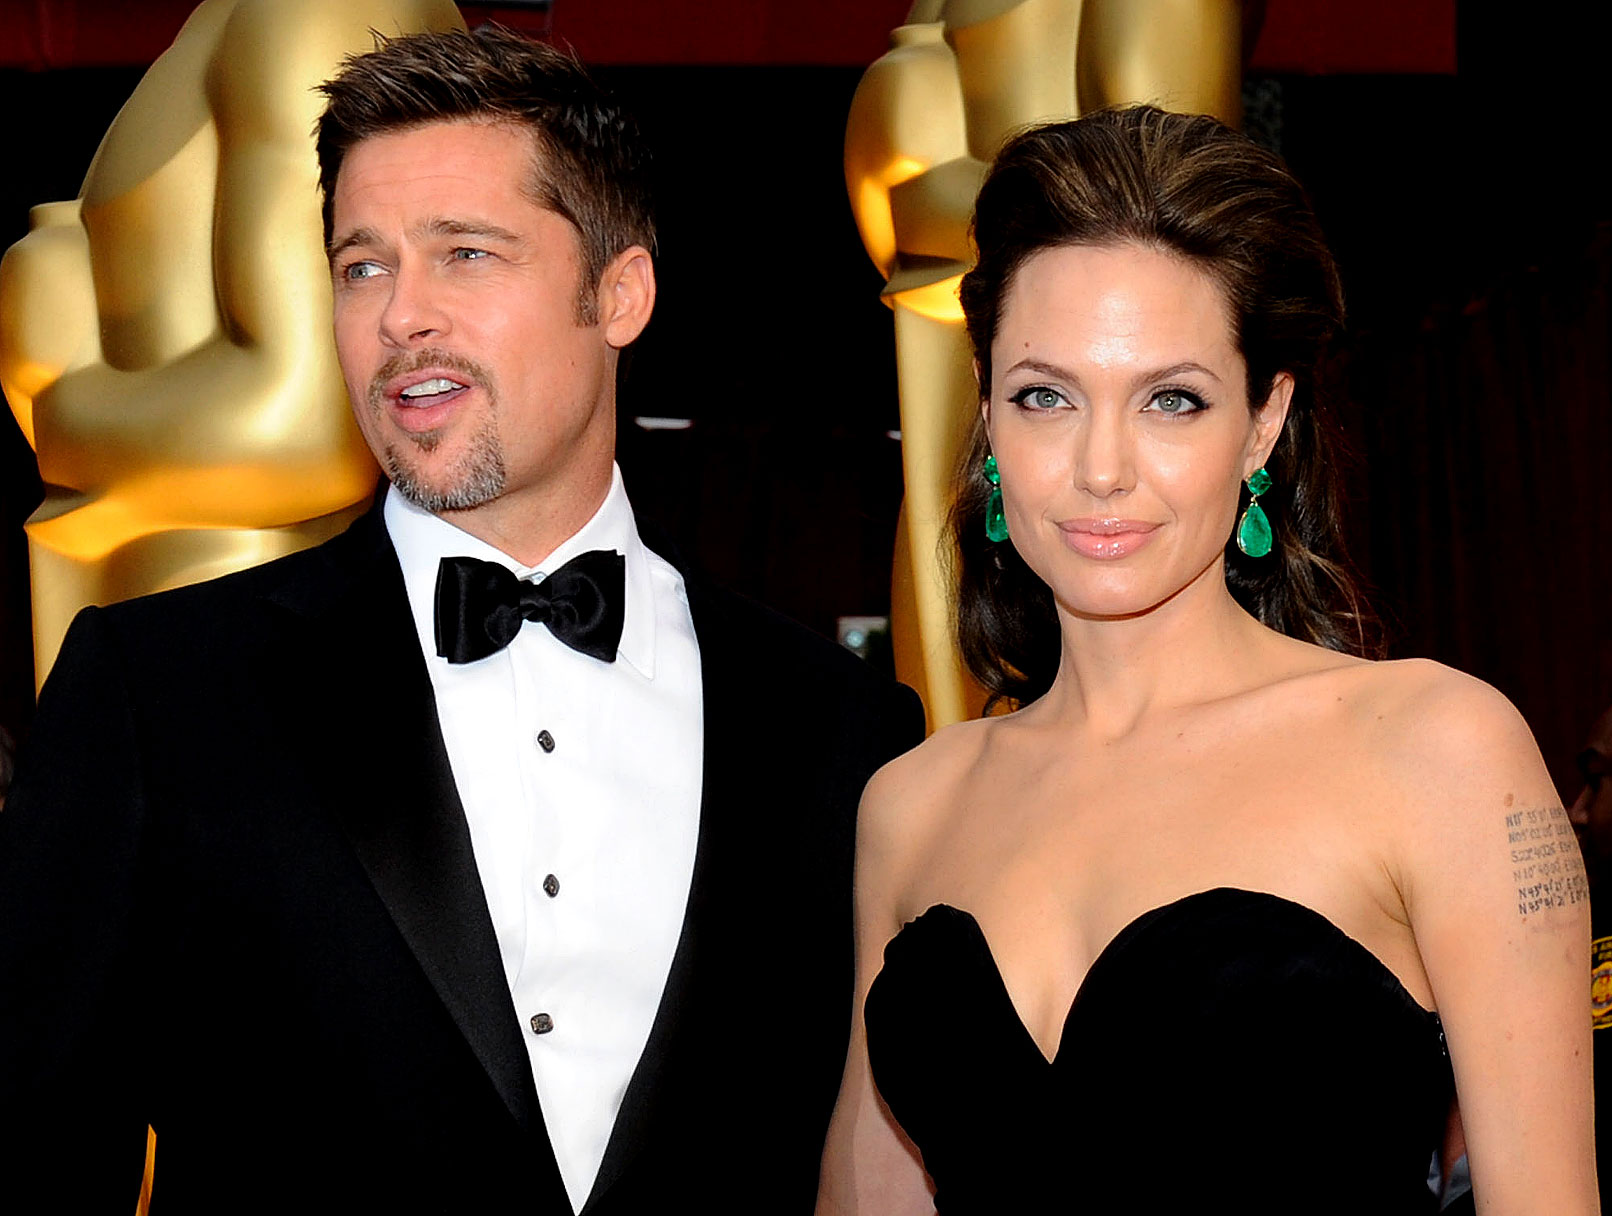 Report: Brad and Angelina May Drop $25 Million on New York Home